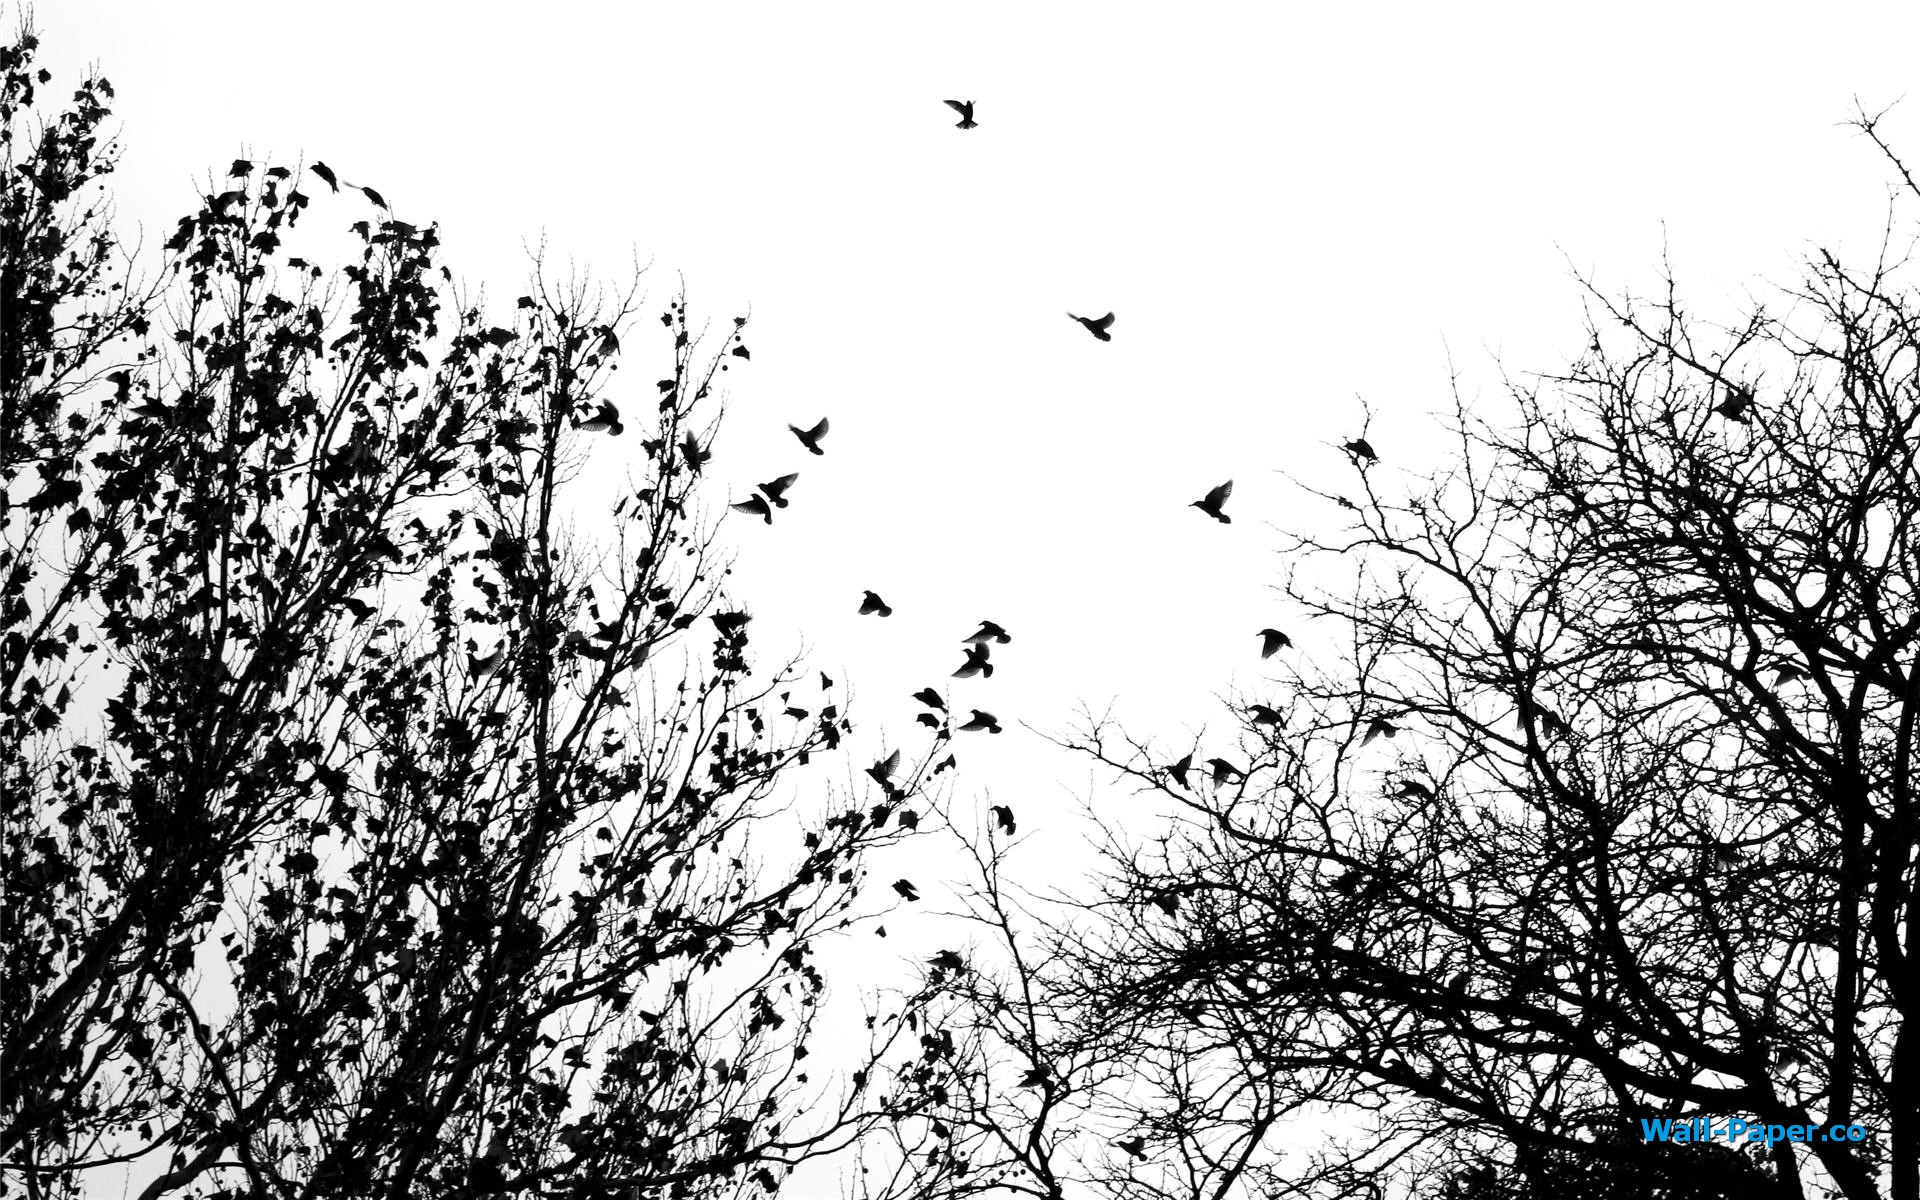 Desktop Pictures: Black And White Bird Wallpaper, Black And White